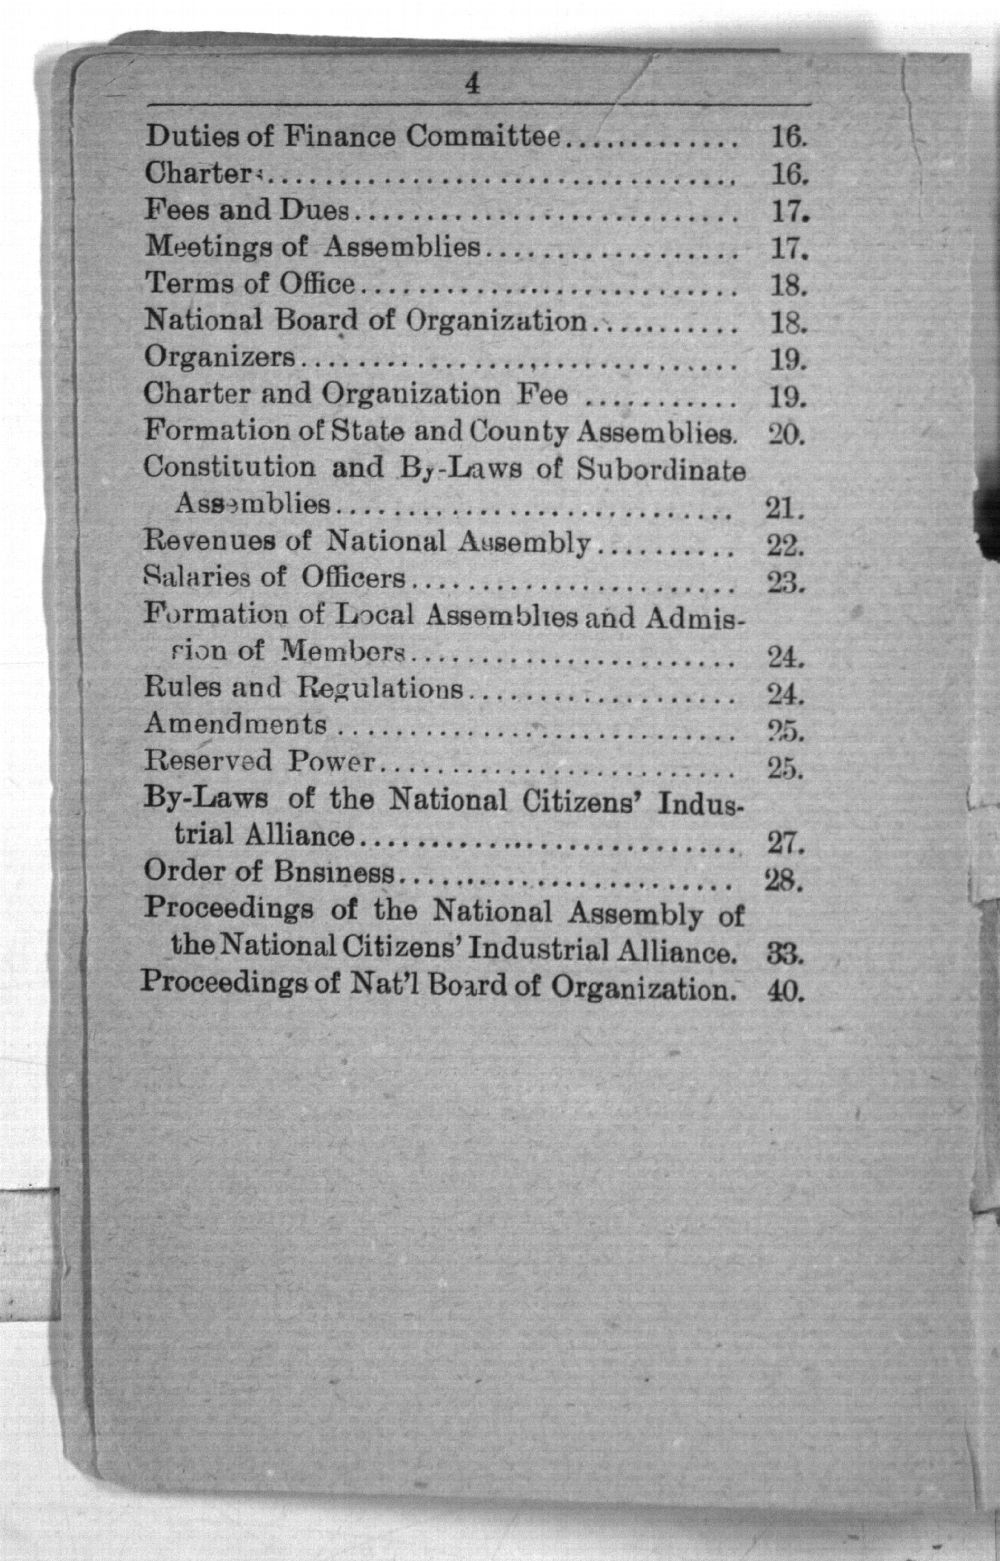 Declaration of principles, platform, constitution and by-laws of the National Citizens' Industrial Alliance and proceeding of the National Assembly held at Topeka, January 13 to 17, 1891 - 4